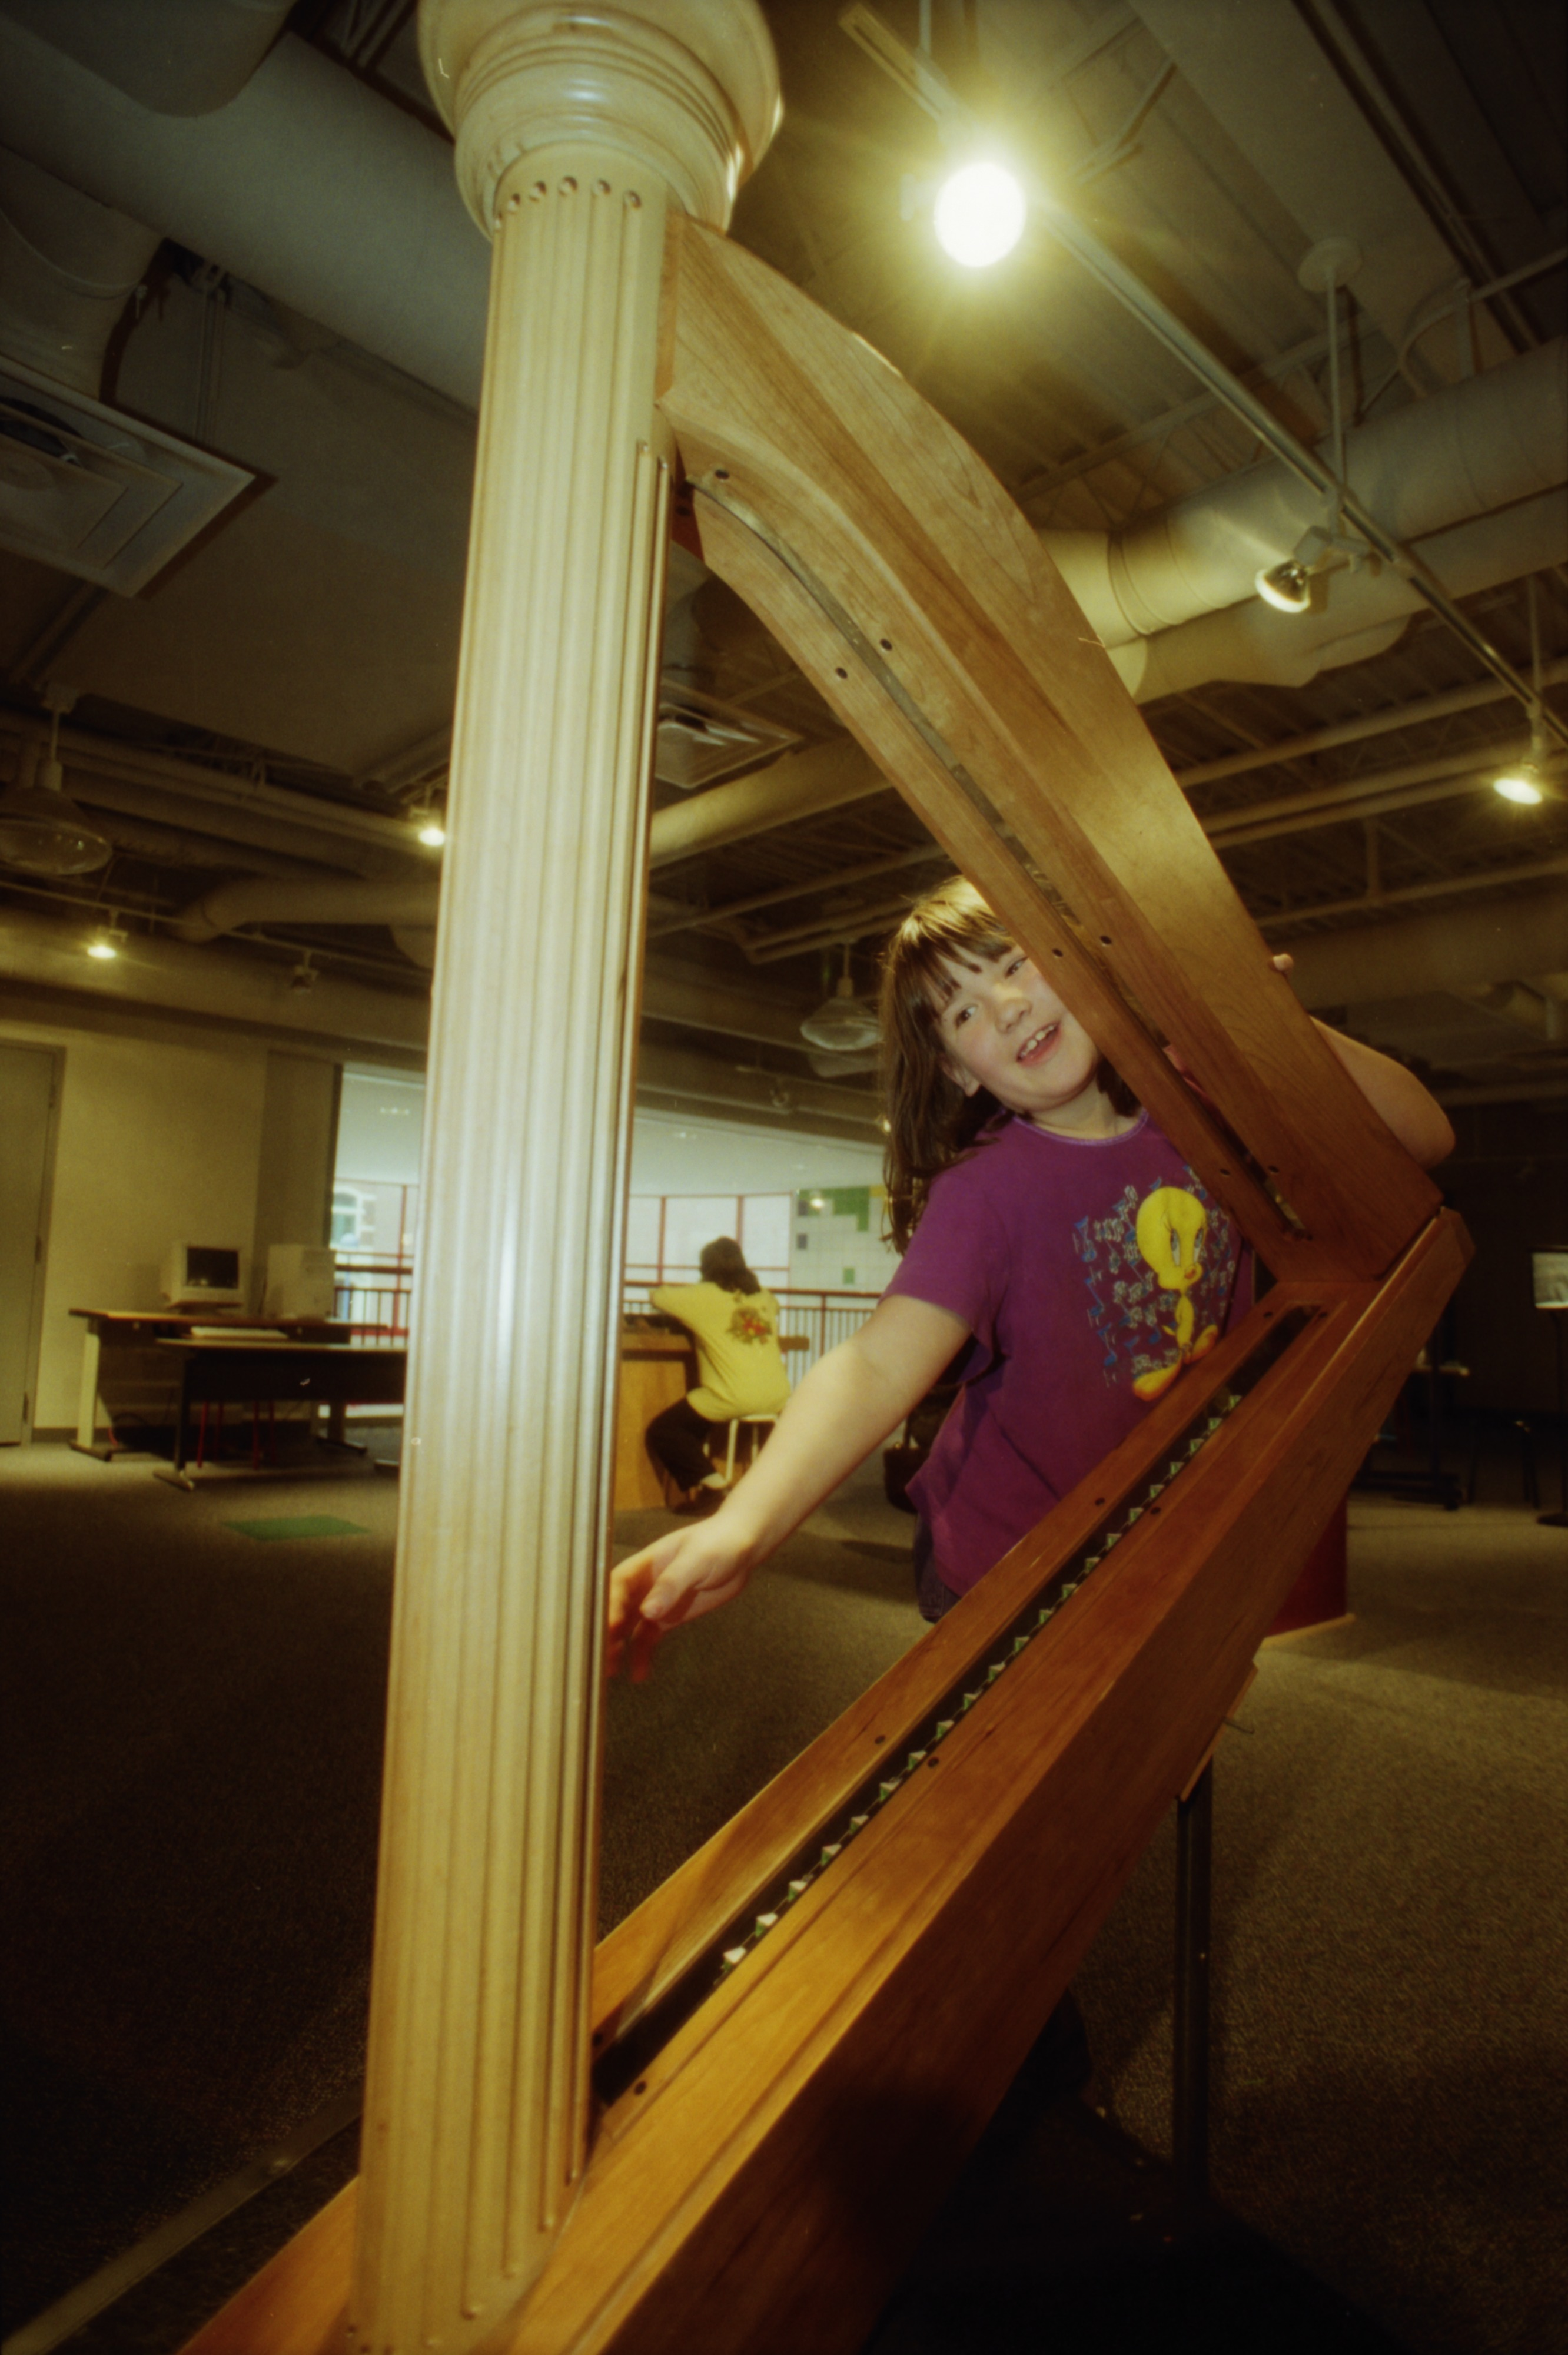 The stringless laser harp at the Hands-On Museum image